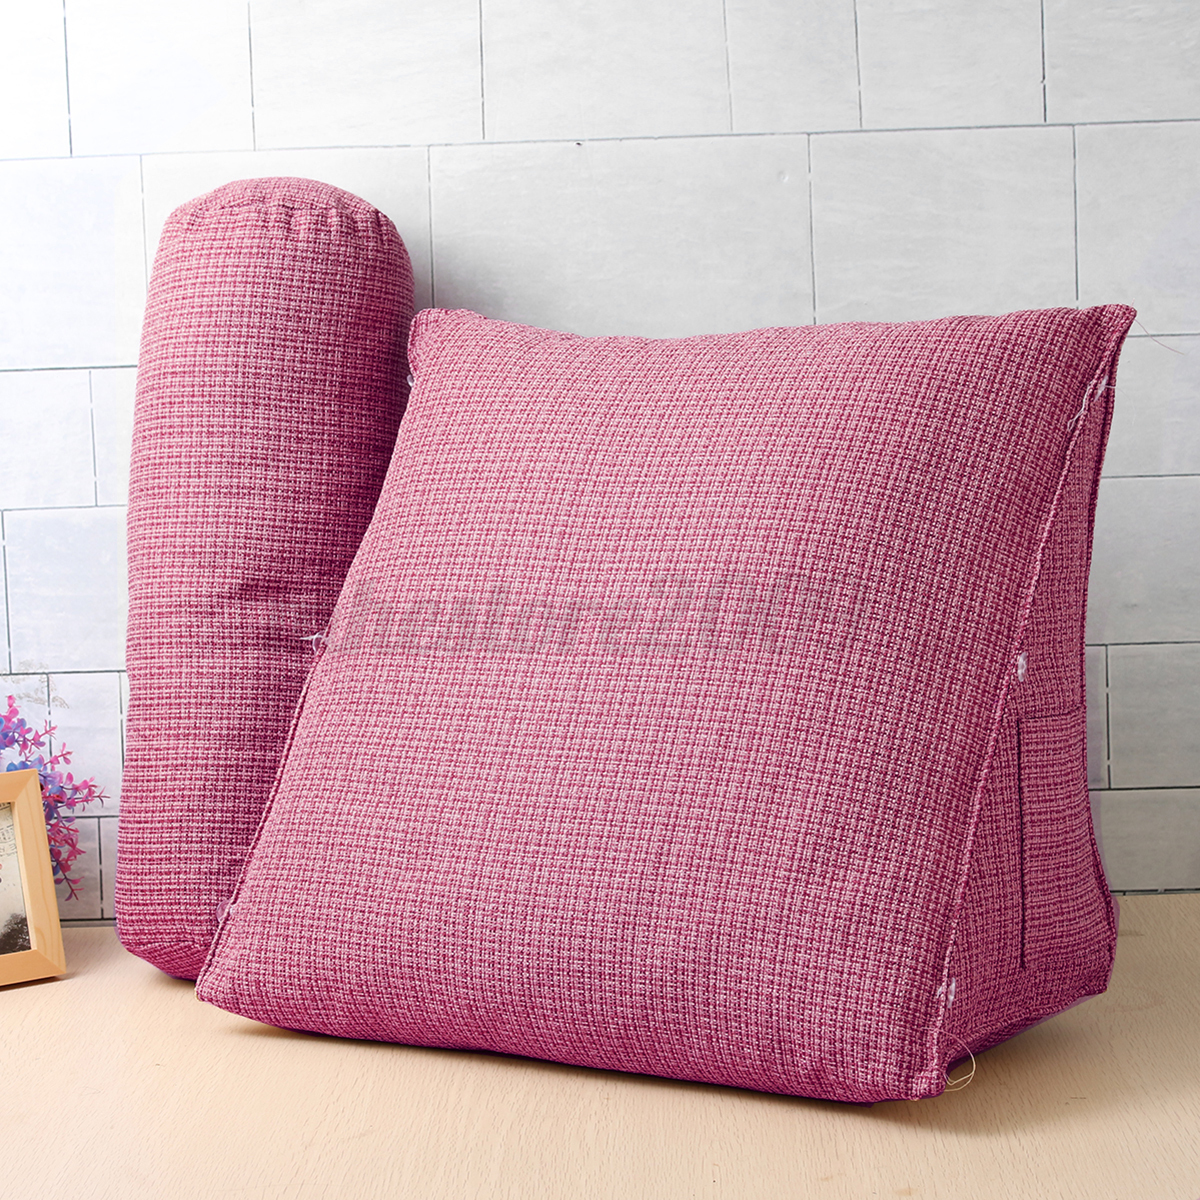 Back Pillow For Chair Big Adjustable Sofa Bed Chair Office Rest Neck Support